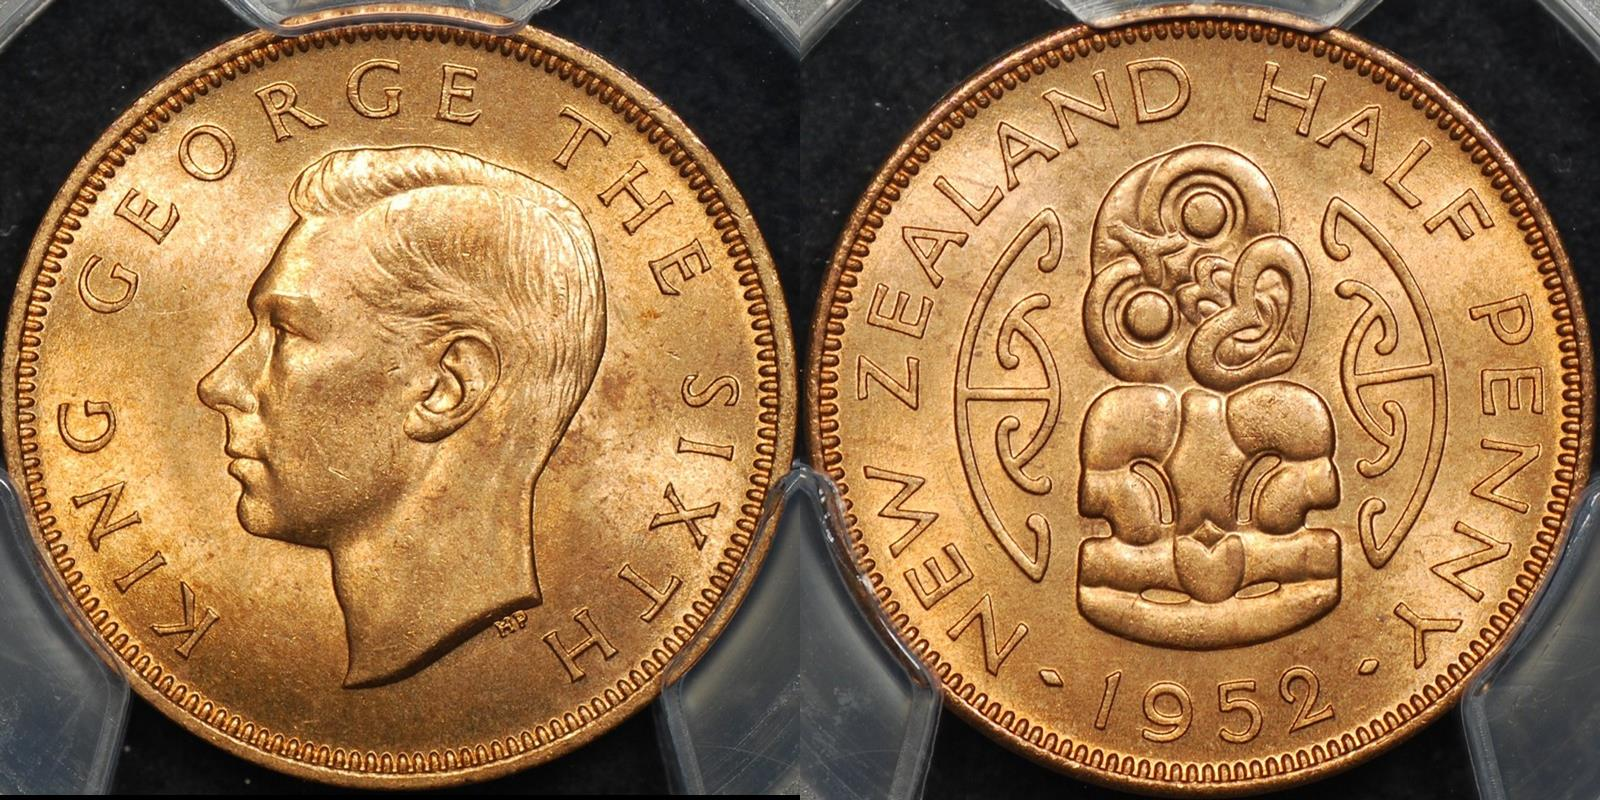 New zealand 1952 half penny 1 2d PCGS MS64rd Choice Uncirculated red